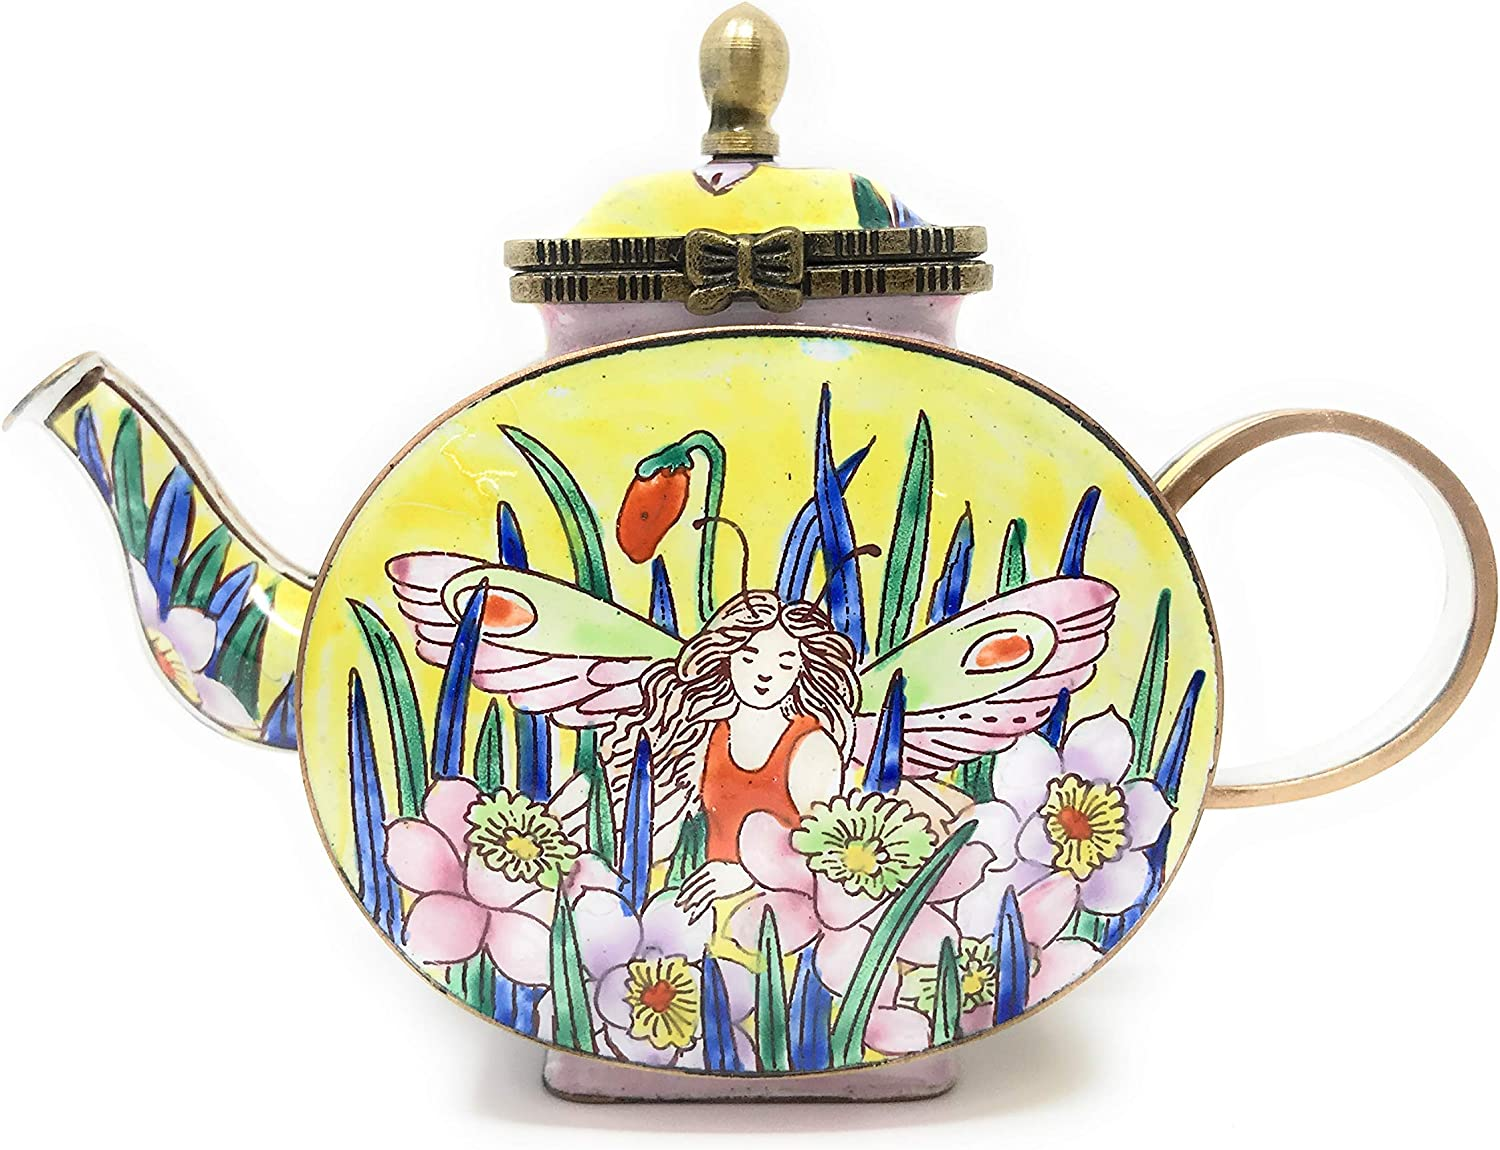 Kelvin Chen Garden Fairy Enameled Miniature Teapot with Hinged Lid, 4.75 Inches Long